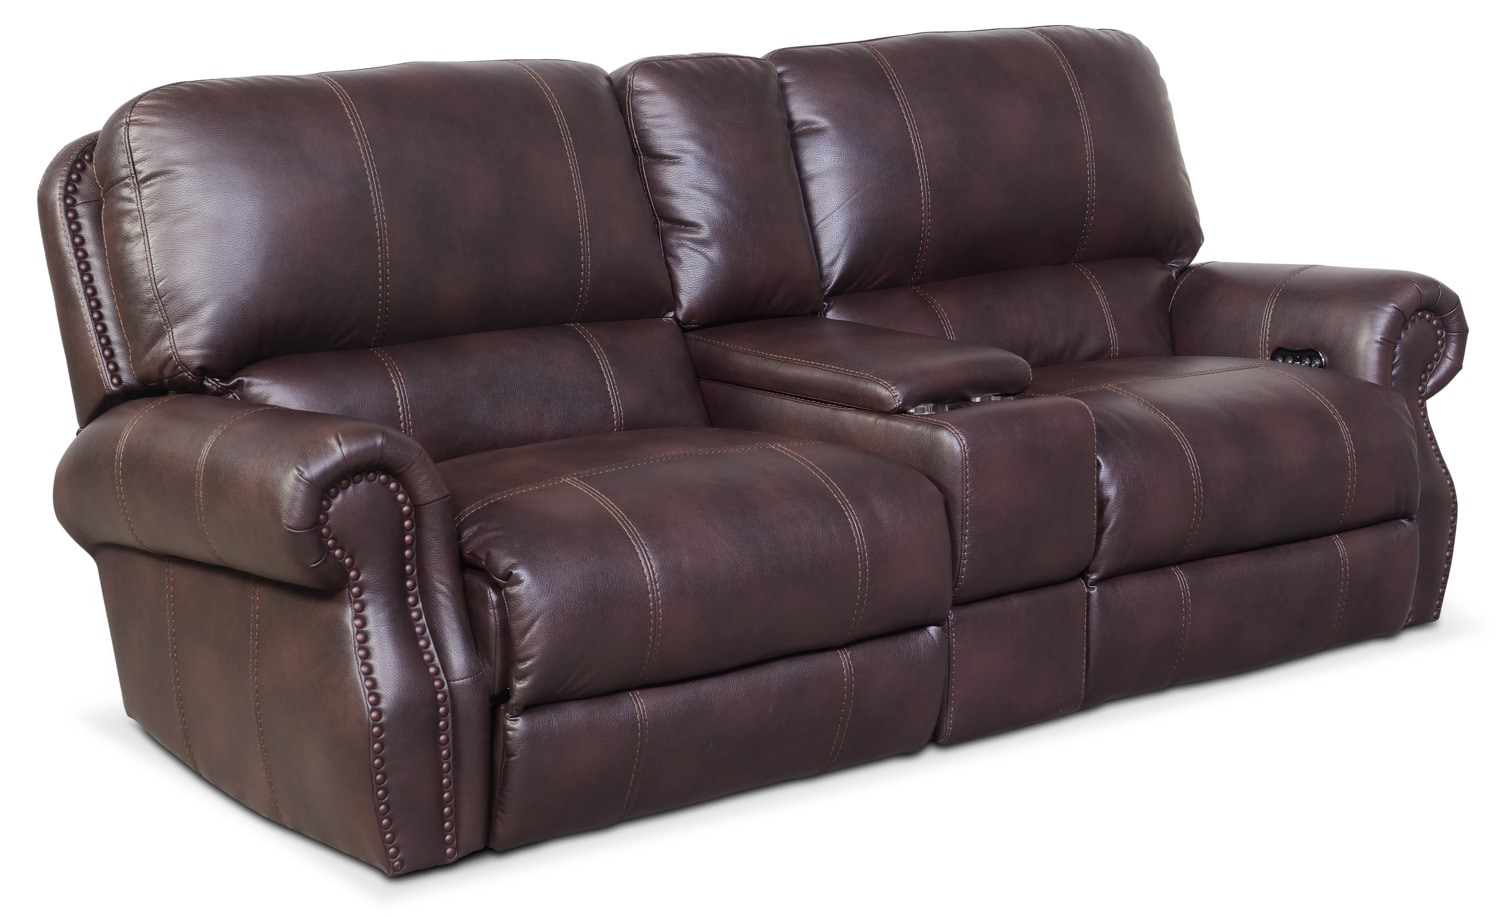 Dartmouth 3 Piece Power Reclining Sofa With Console   Burgundy